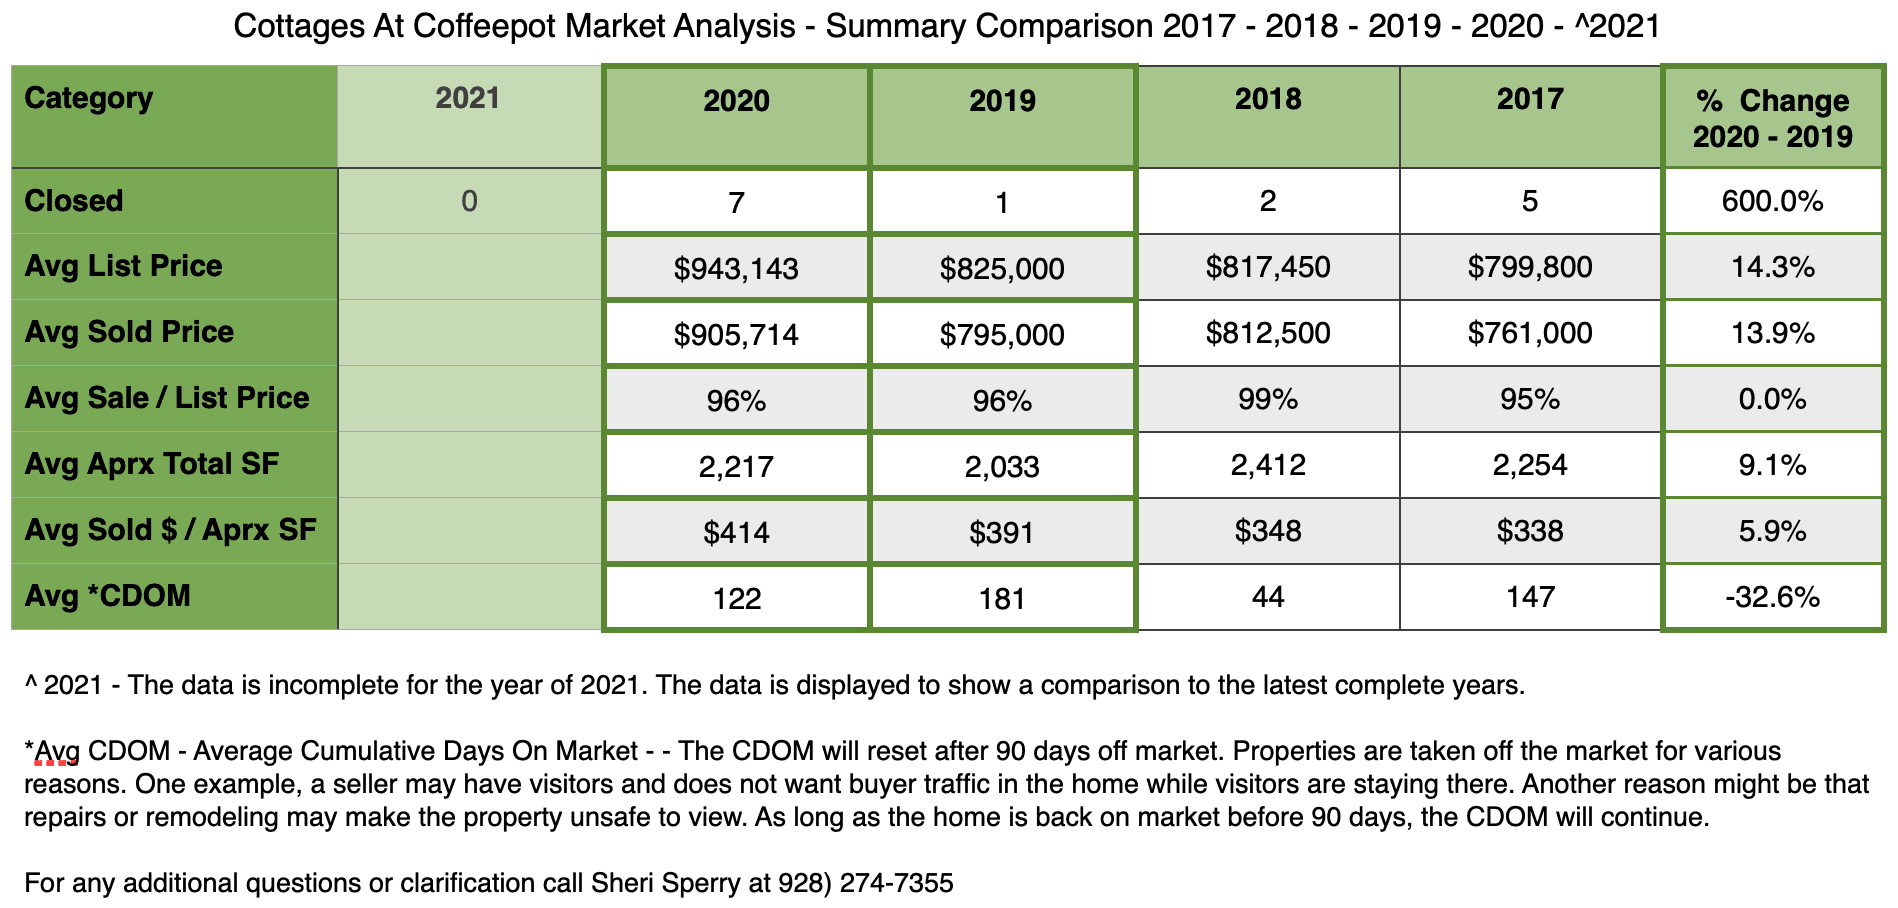 Market Summary Cottages At Coffeepot 2020